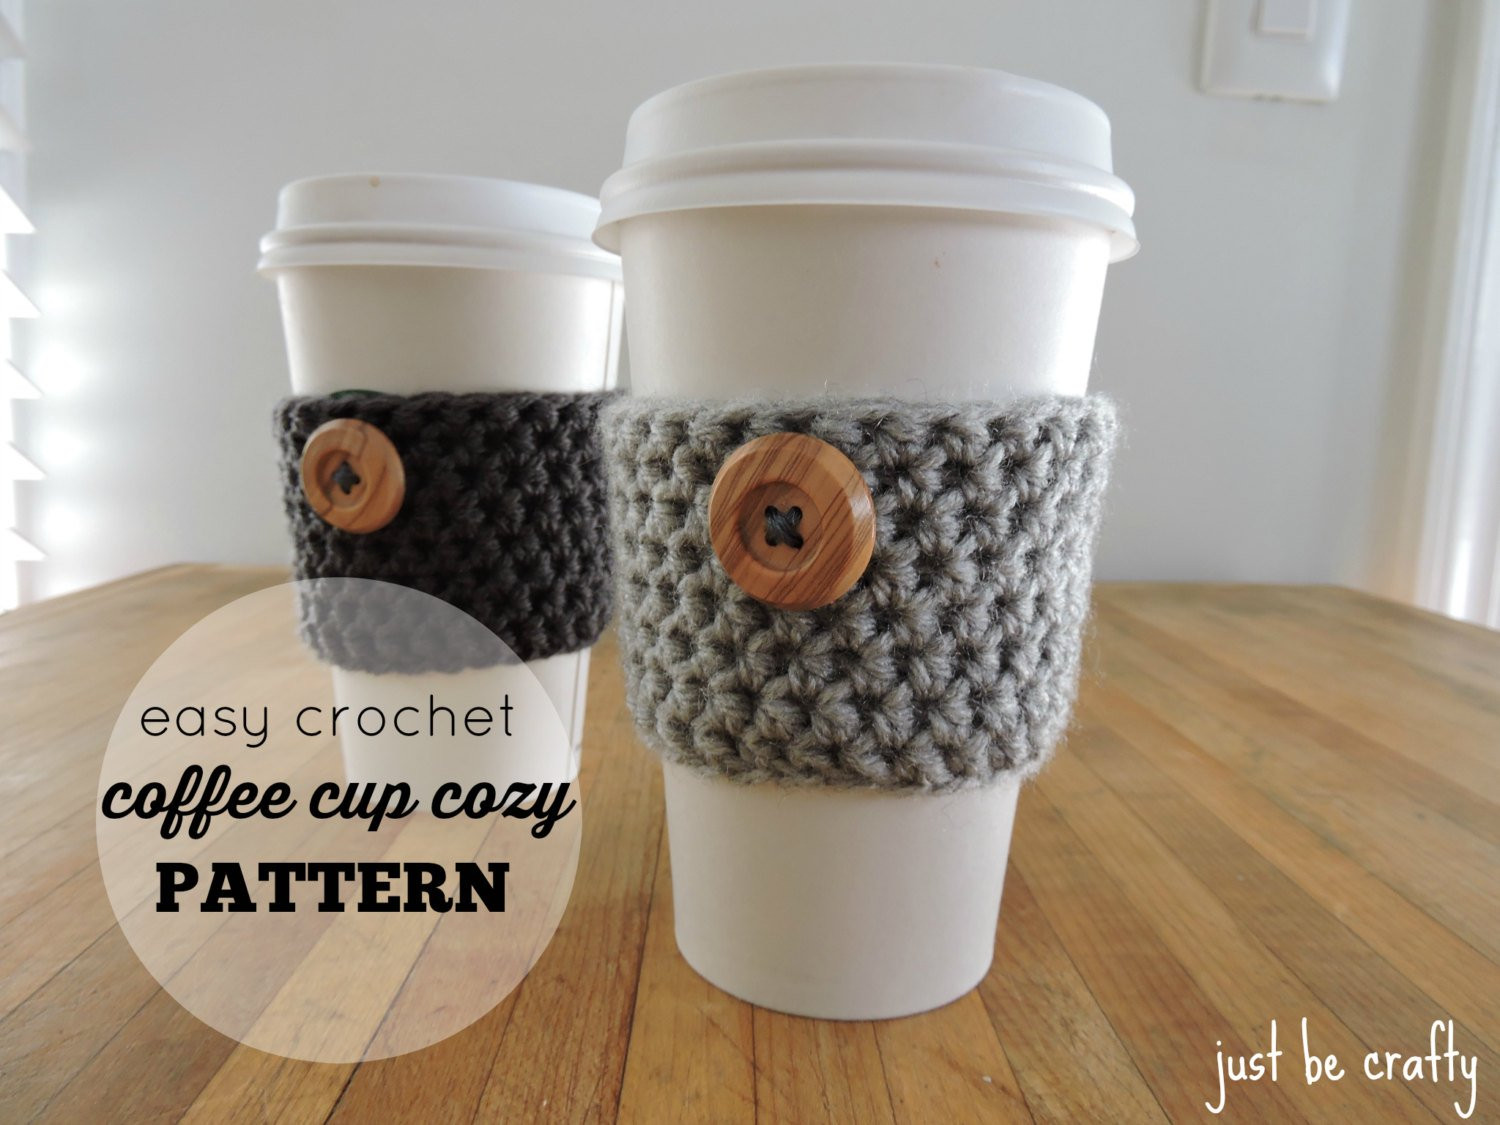 Crochet Coffee Cup Cozy Inspirational Crochet Coffee Cup Cozy Pattern Pdf Download Coffee Cup Cozy Of Crochet Coffee Cup Cozy Elegant Basketweave Cup Cozy Crochet Pattern with